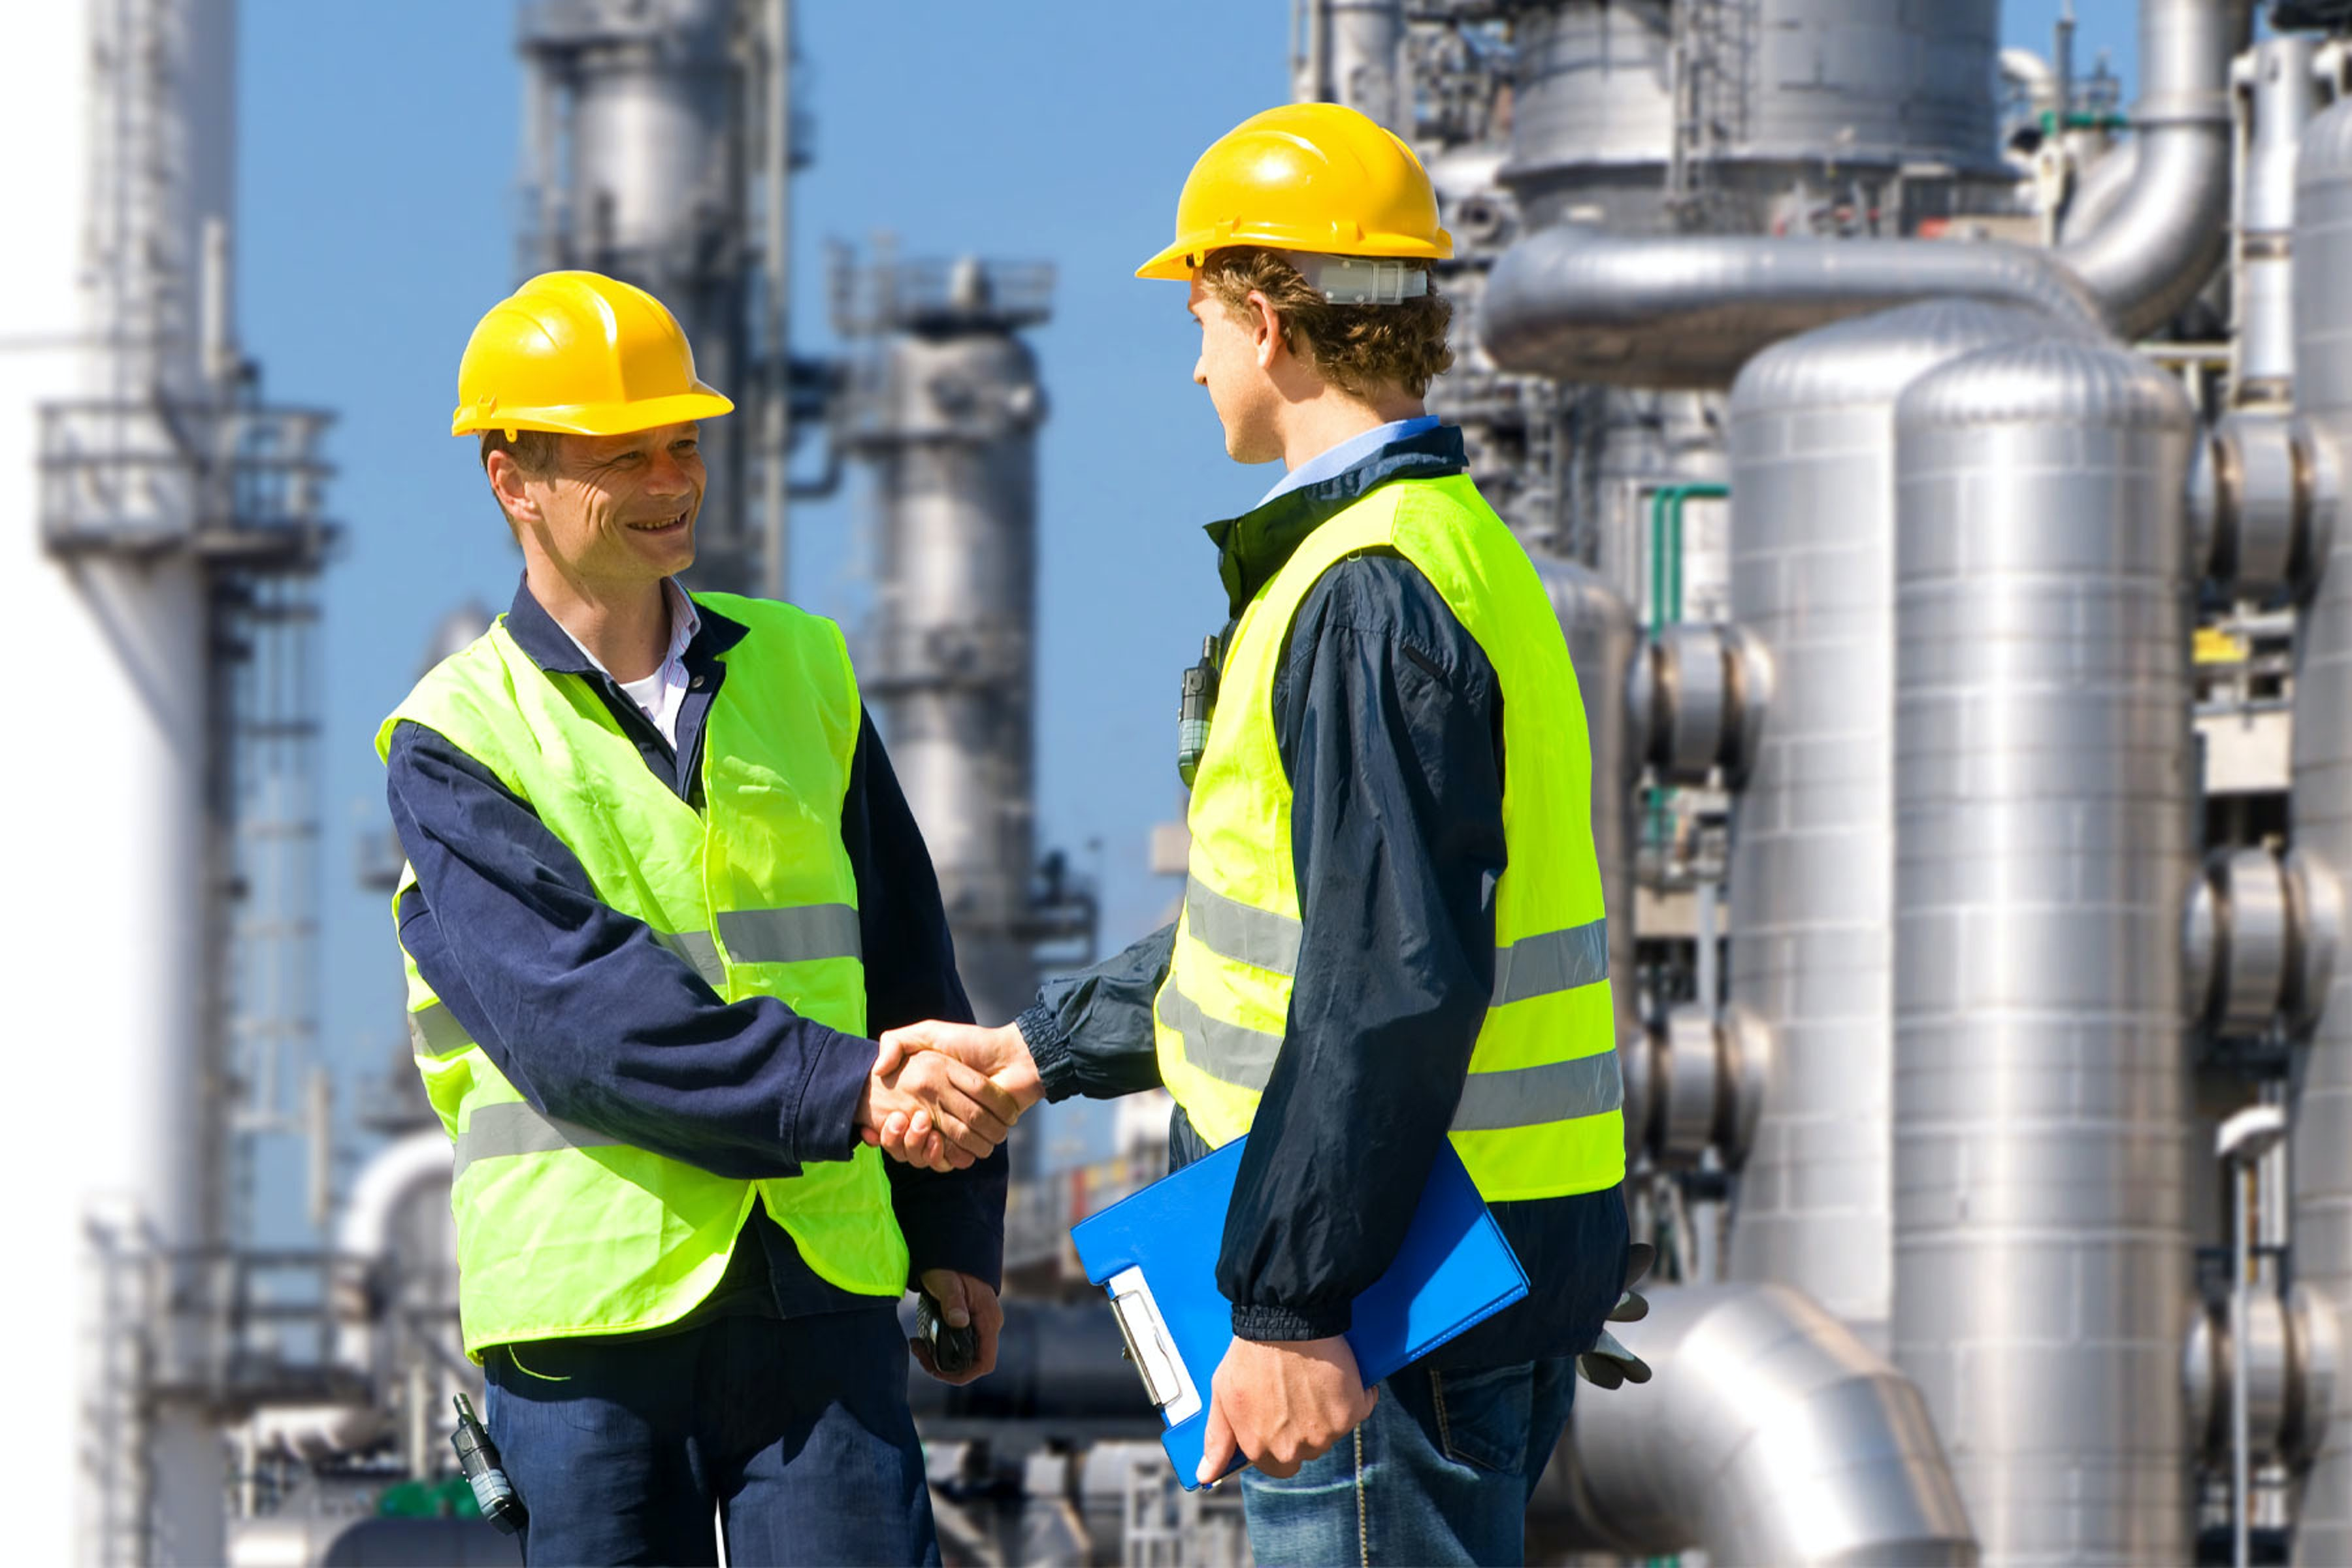 field workers shaking hands in high vis clothing in a chemical plant